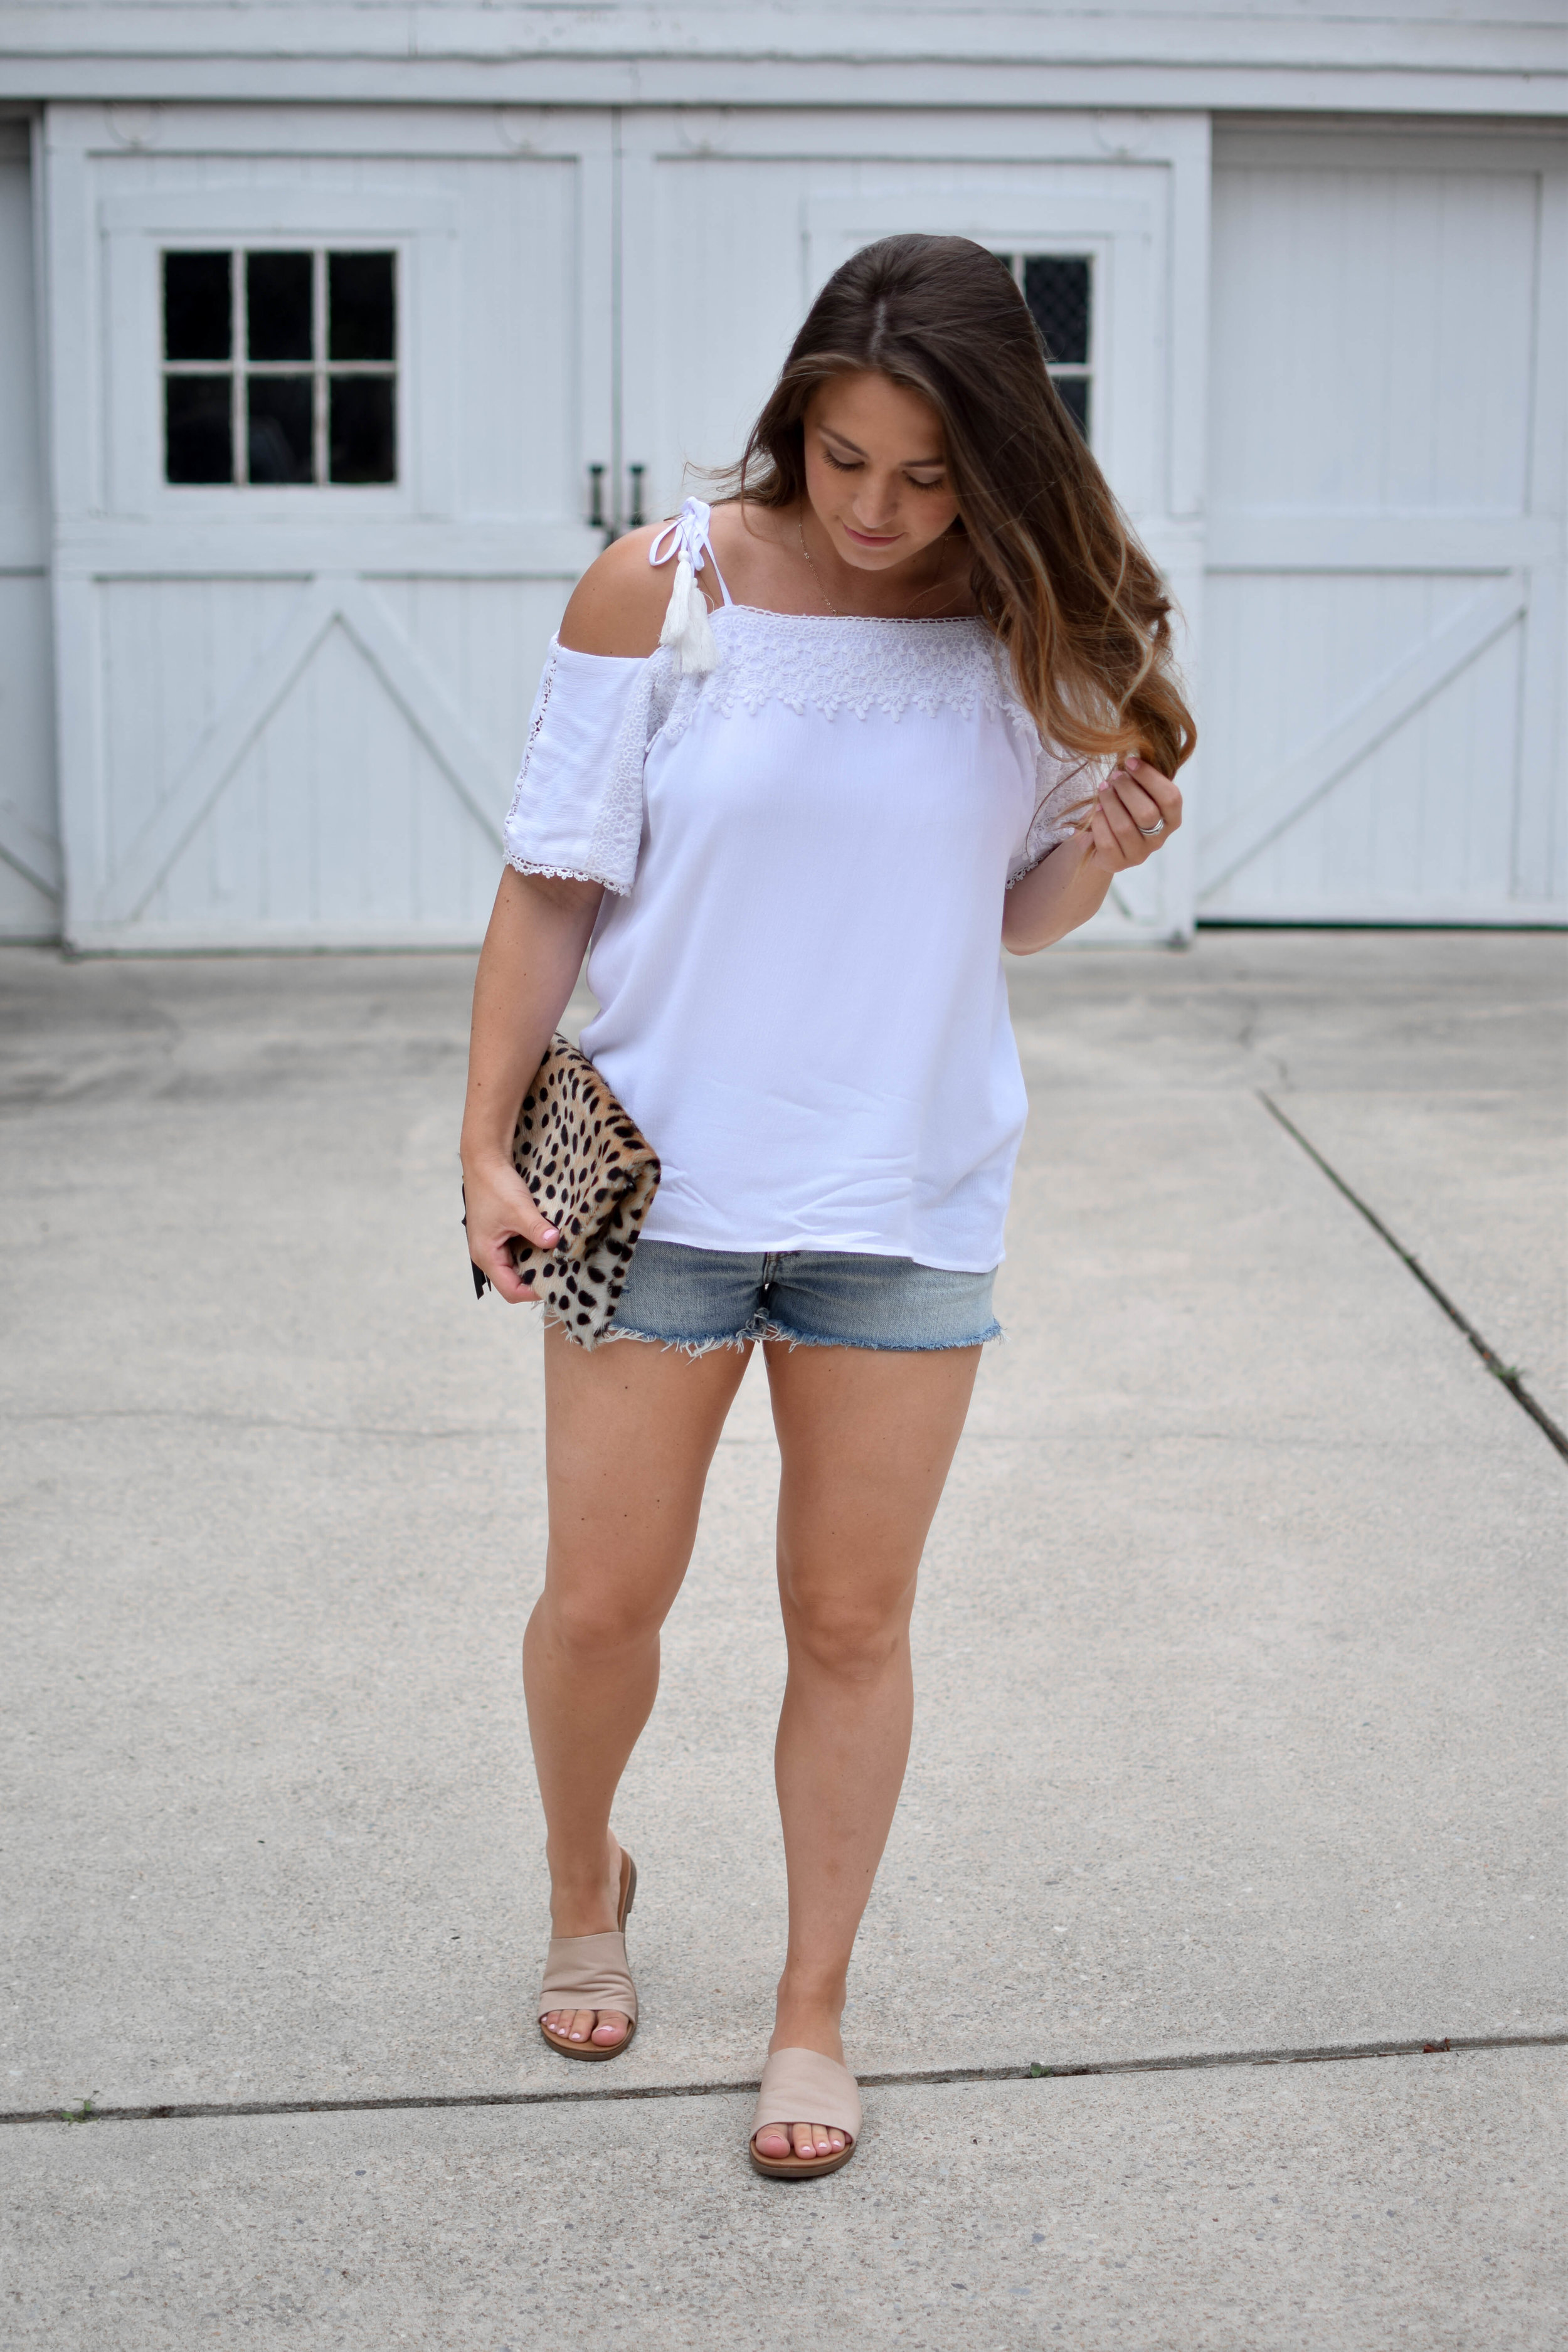 nell + rose white cold shoulder top, Levi's 501 denim cutoffs, Steve Madden slides, the providence story leopard clutch, summer outfit idea